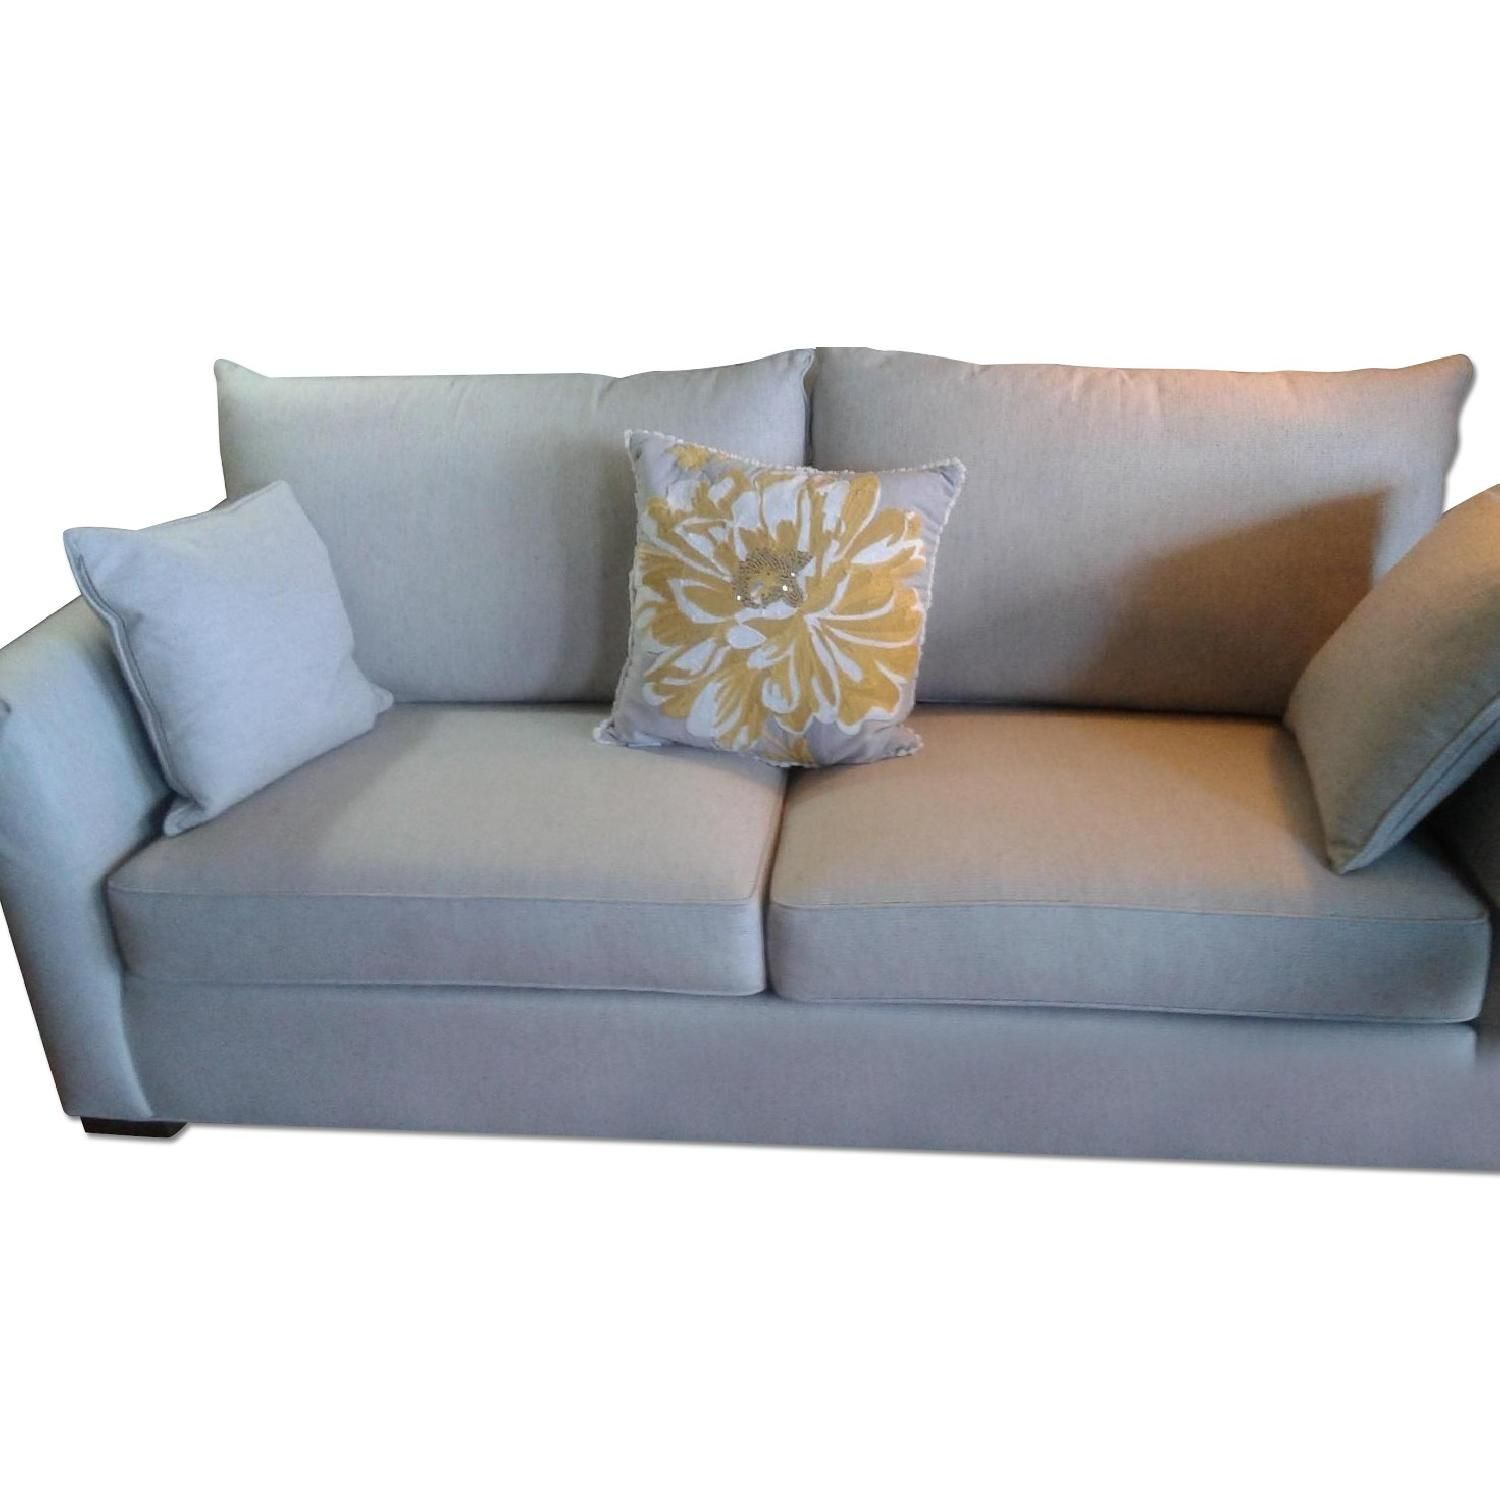 ethan allen cheshire sofa couch pinterest sofa couch and 2 rh pinterest com